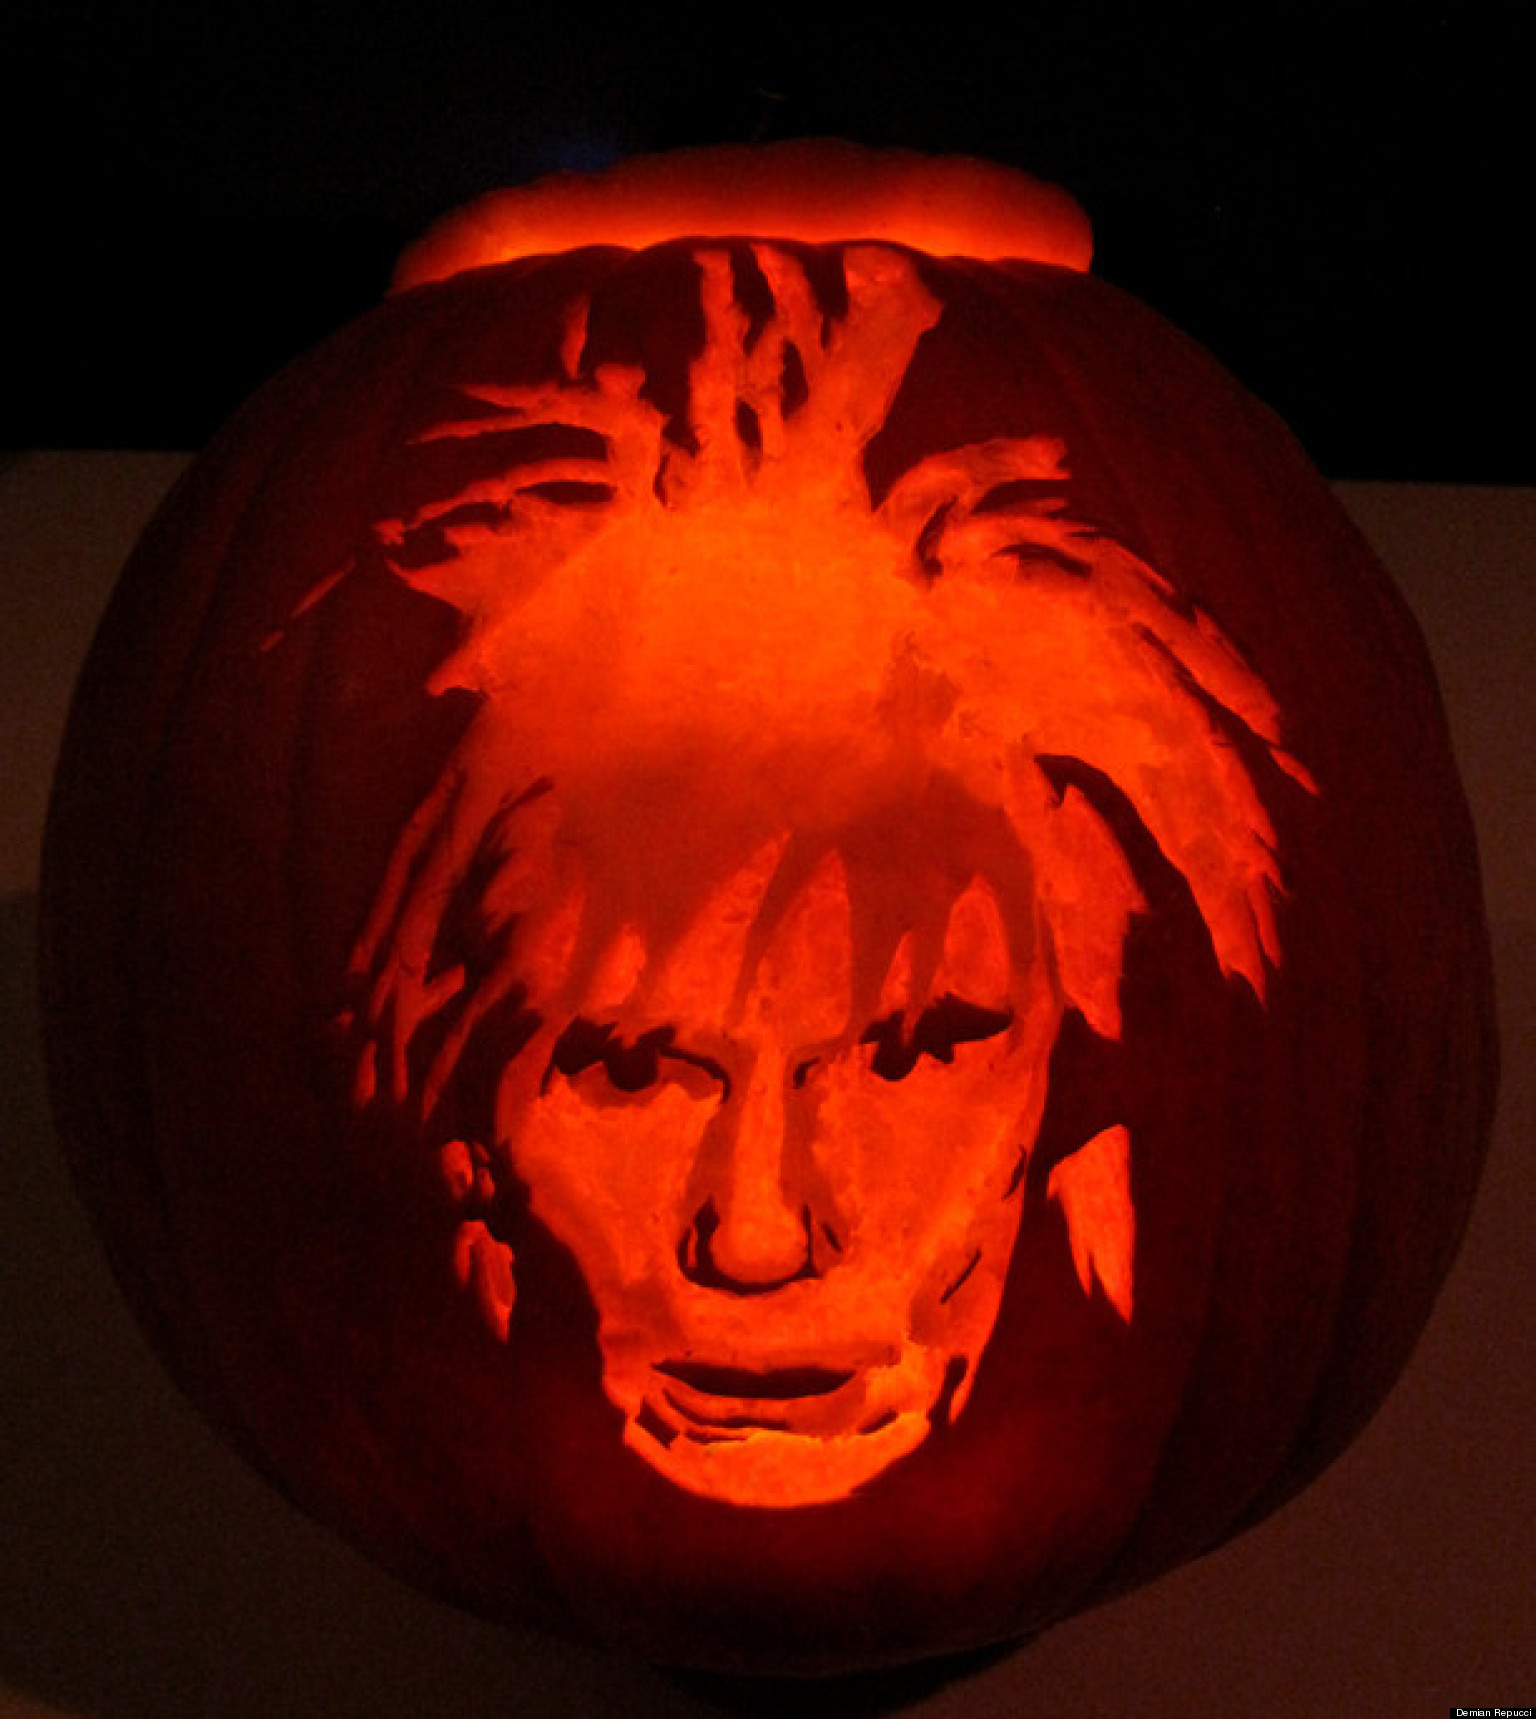 Art inspired pumpkin carving ideas from munch to warhol